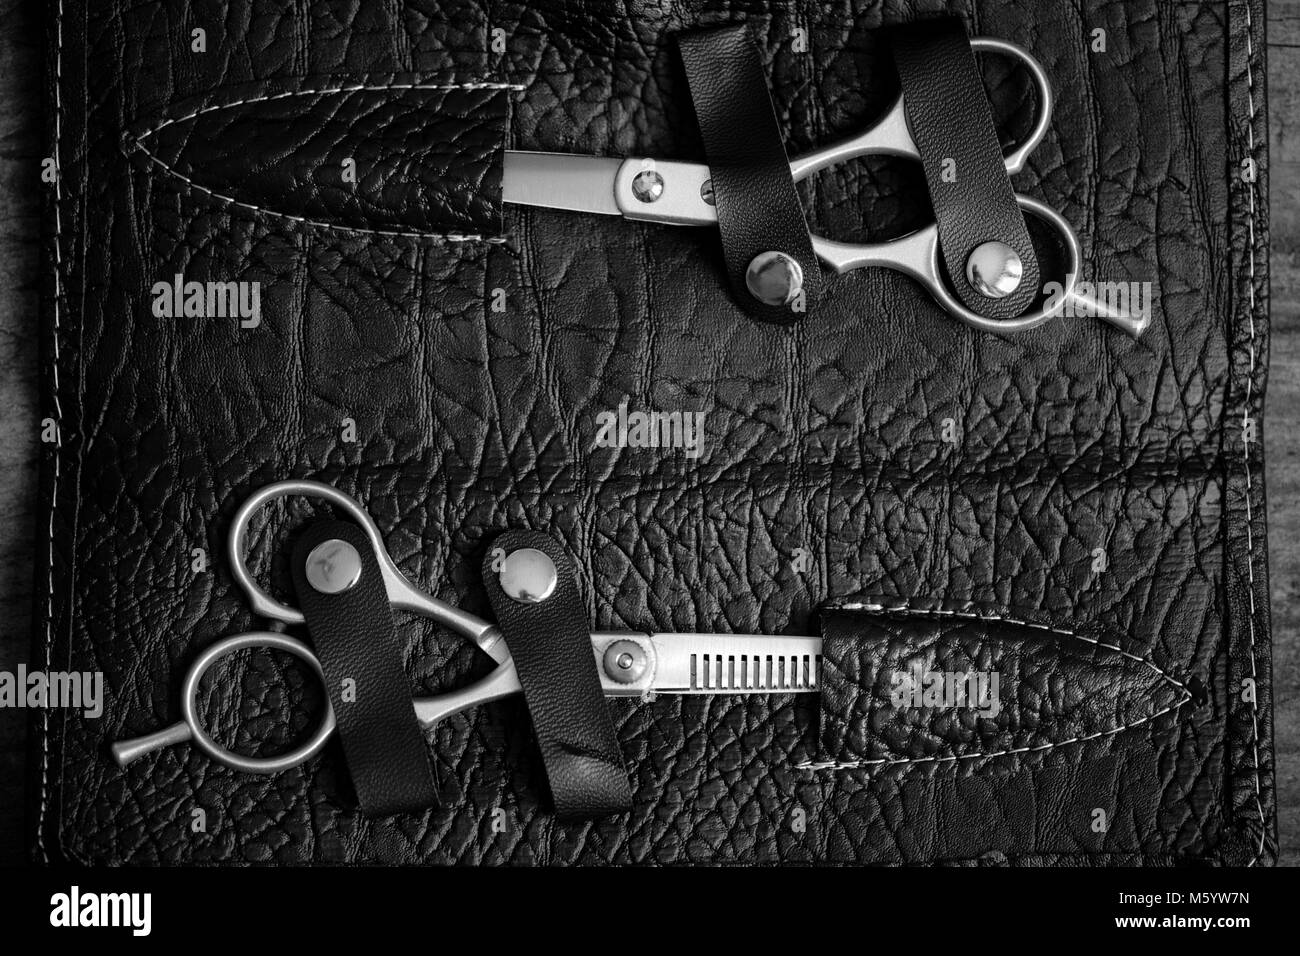 hairdresser tools - black and white photo - Stock Image